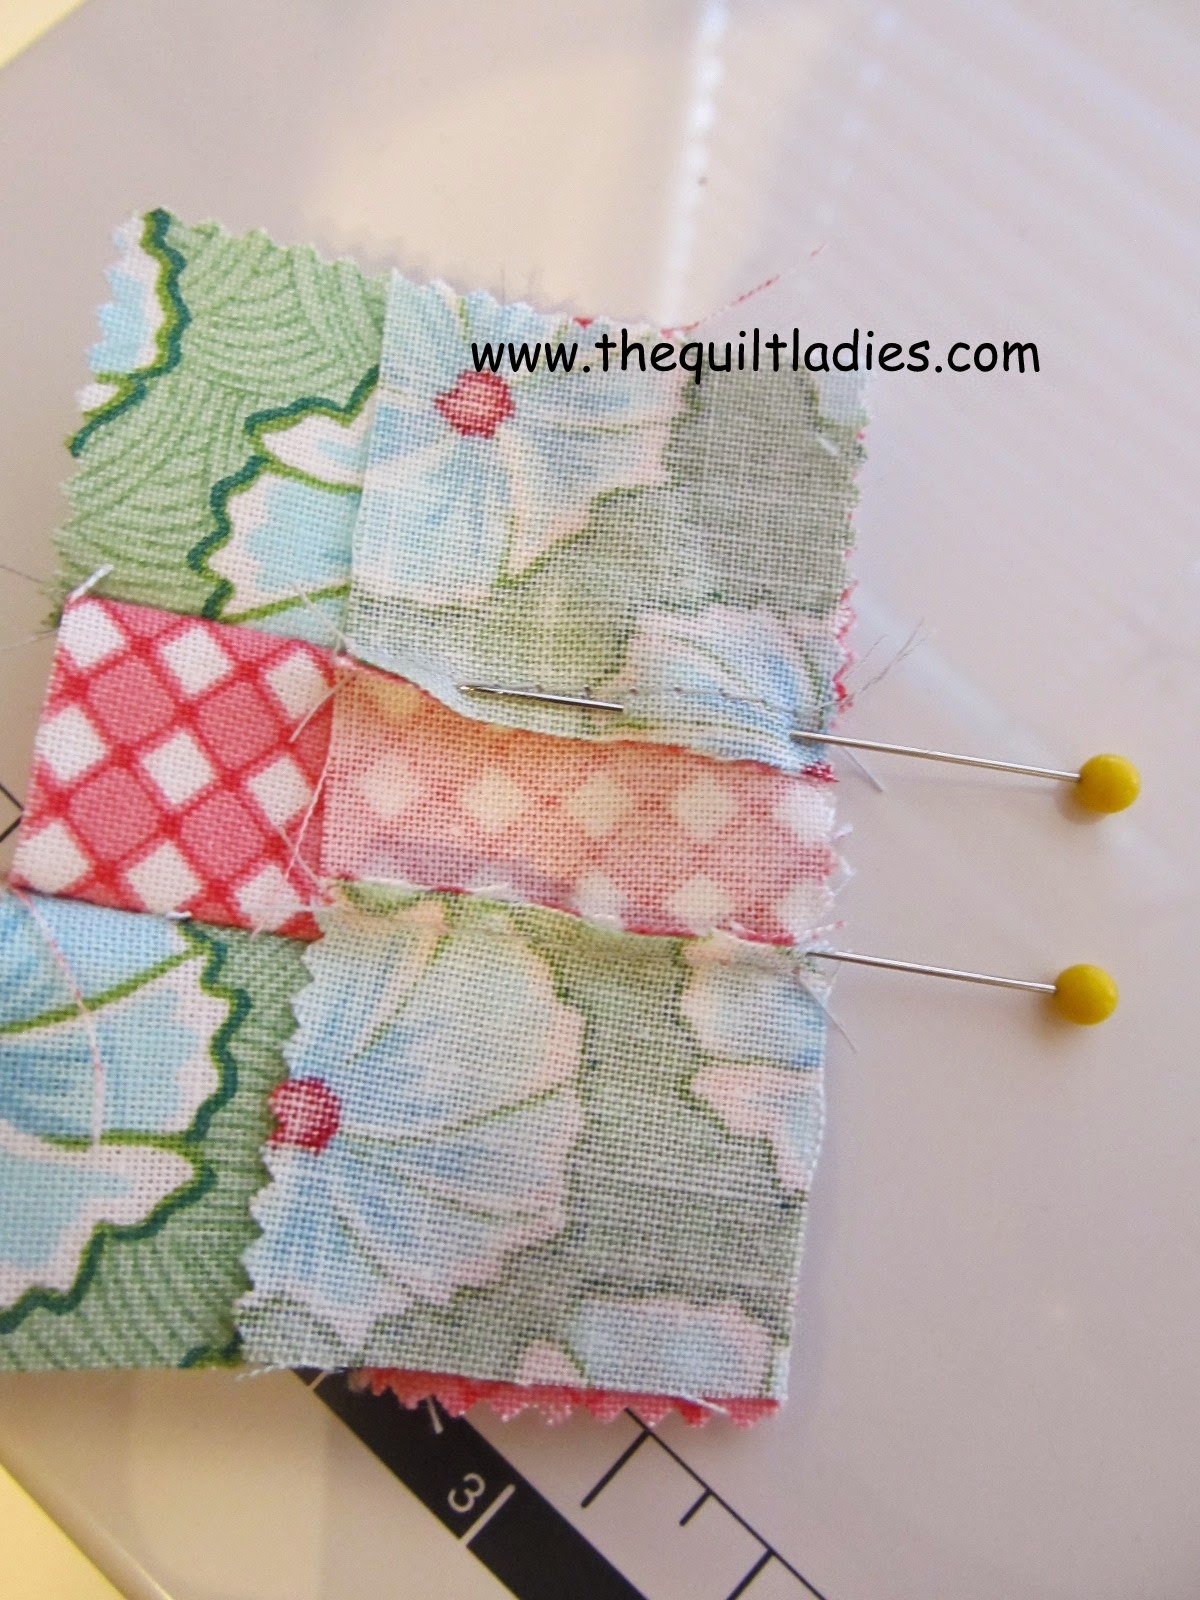 How to make a 9-Patch Table Topper Quilt Pattern and Tutorial